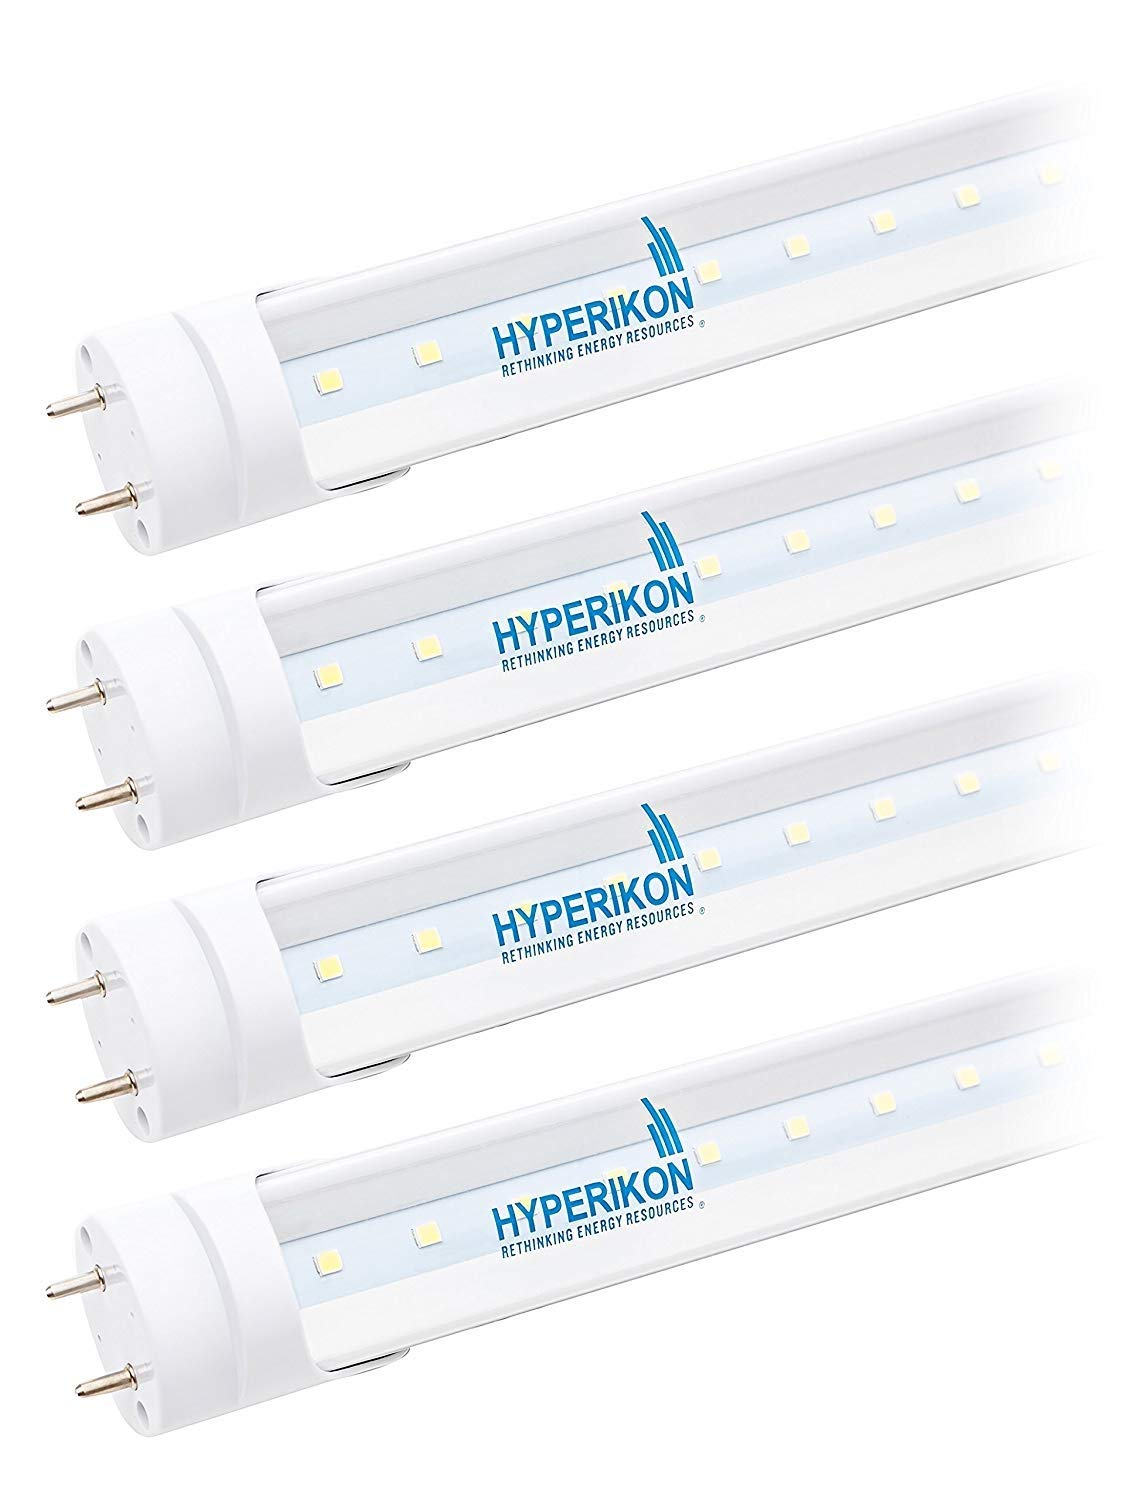 Hyperikon T8 Led Tube 3ft Light 14w 30w 40w Equiv Ballast Wiring Fixtures In Series Multiple Fluorescent Bypass Shatterproof F30t12 Replacement 1400 Lumens 4000k Clear Office Kitchen Garage Ceiling Lights 4 Pack